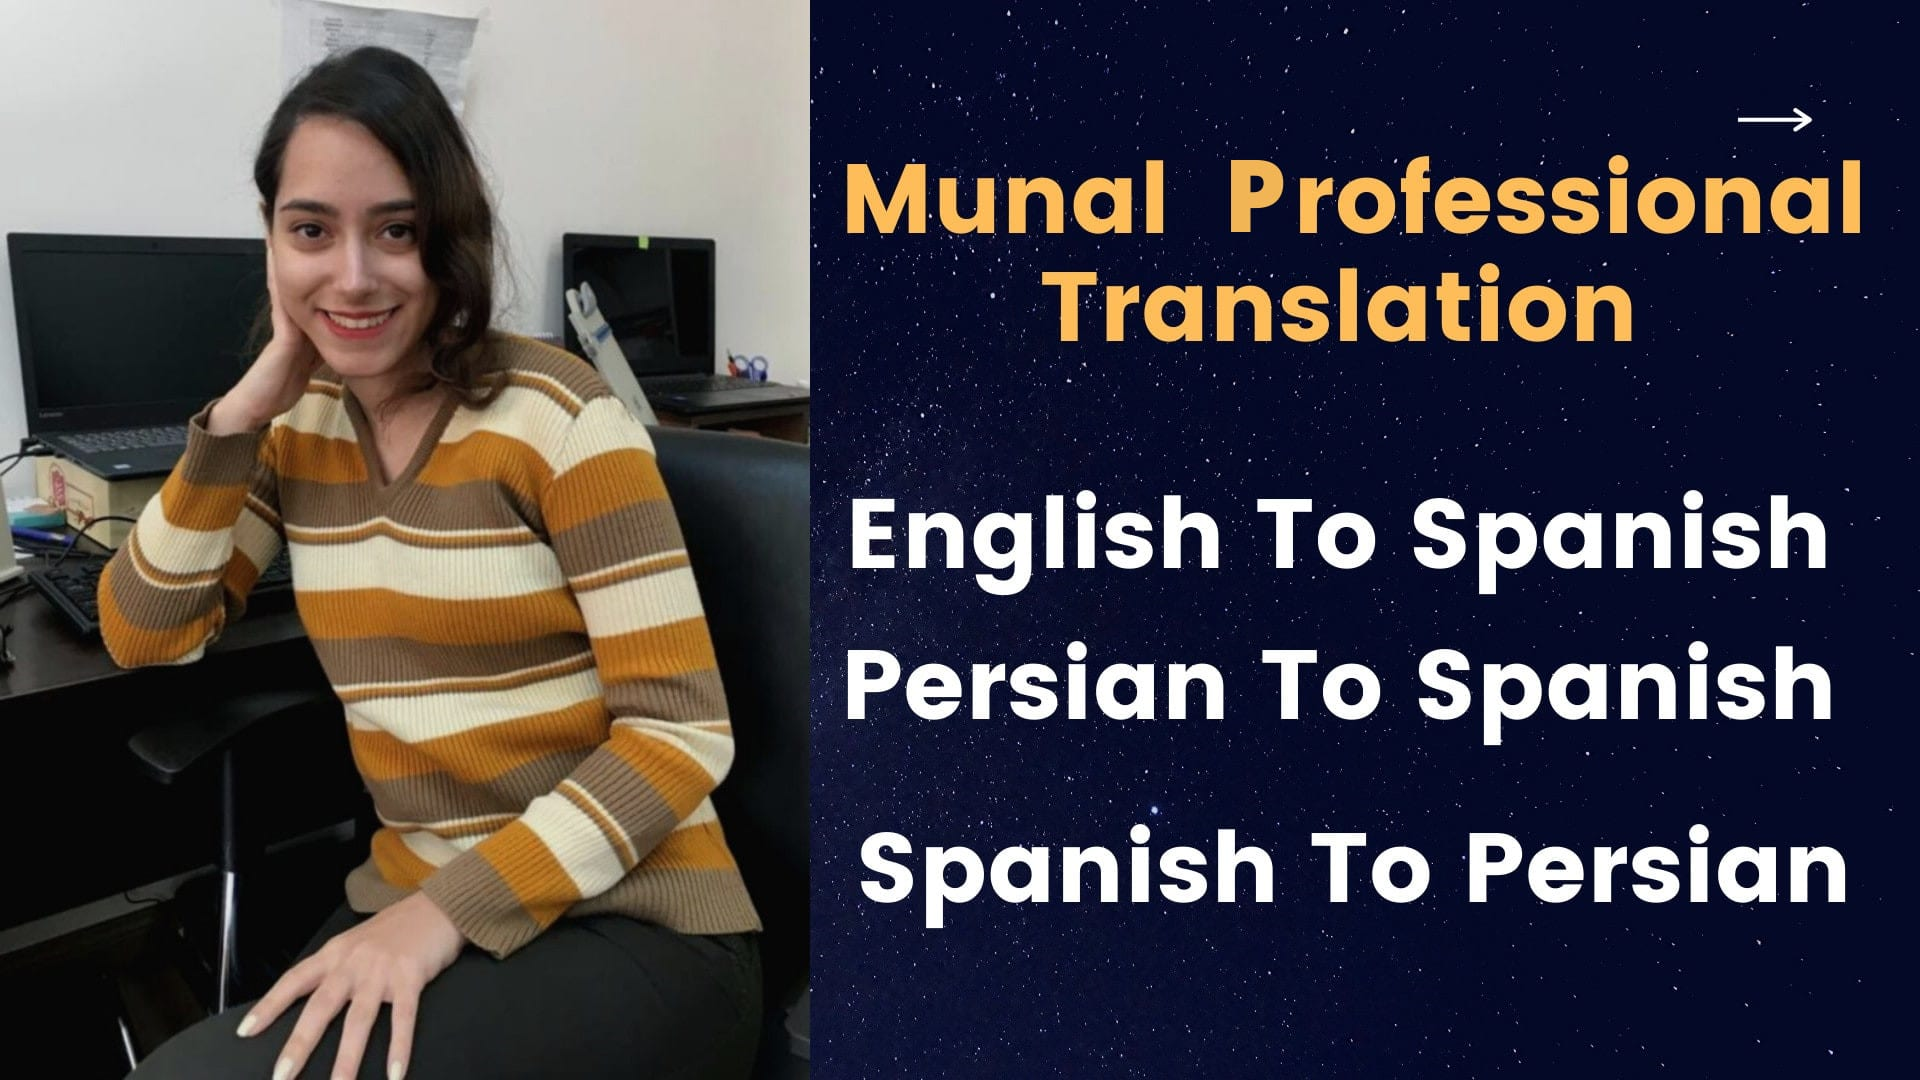 translate 1500 words from english to spanish and farsi by aida es translate 1500 words from english to